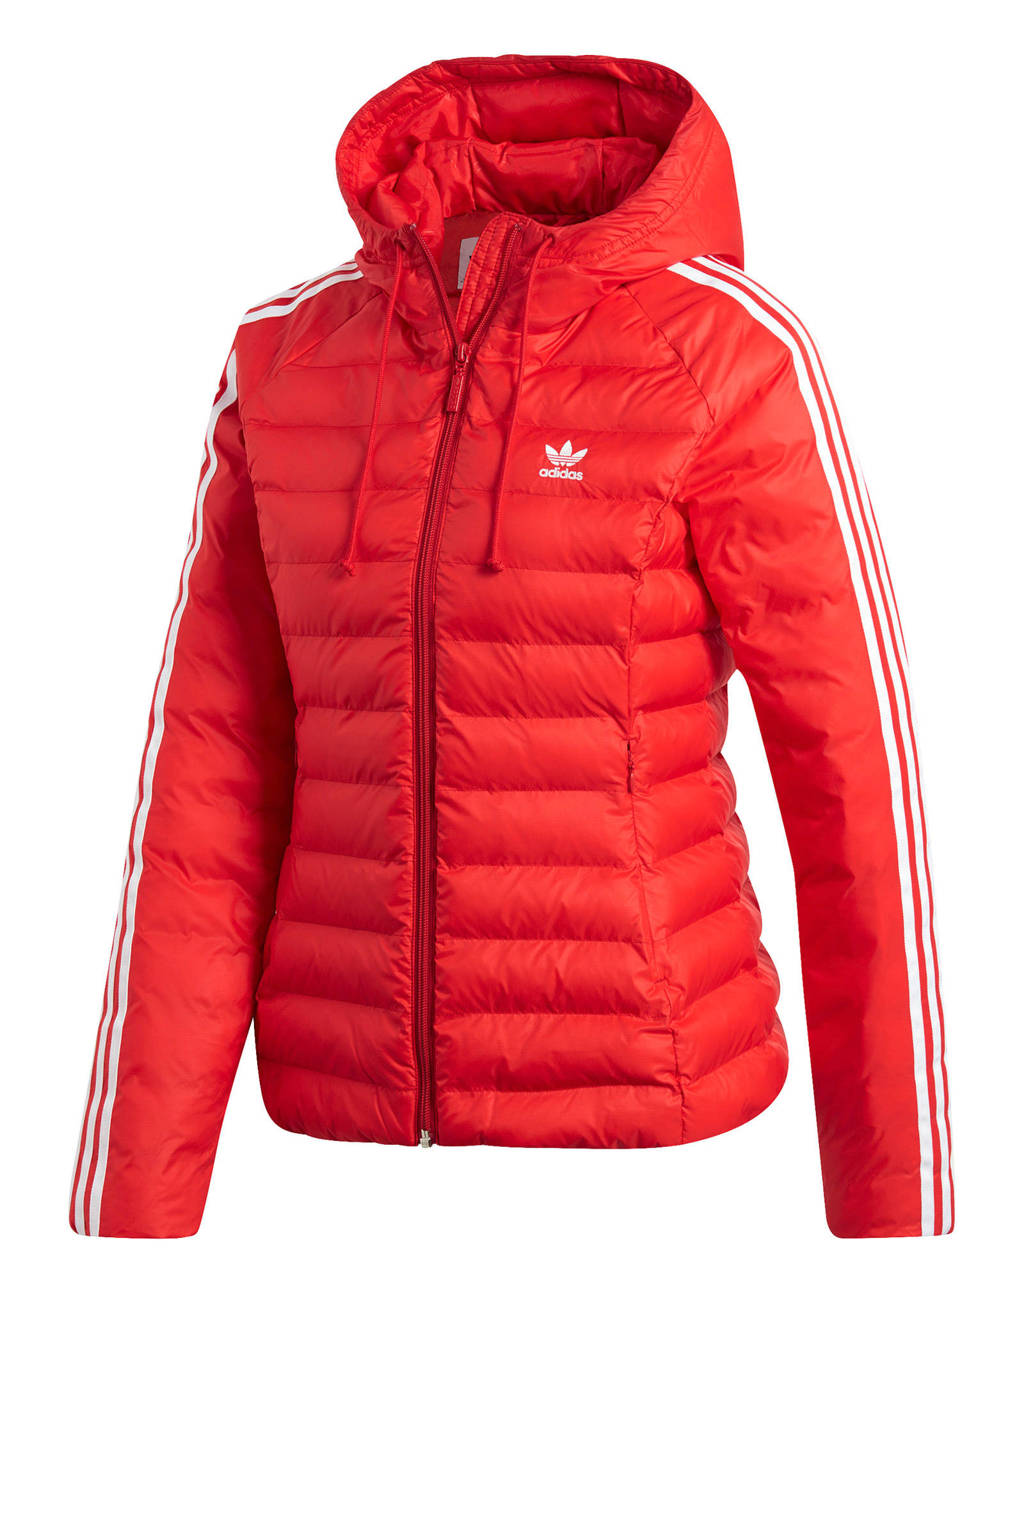 adidas originals winterjas rood, Rood/wit